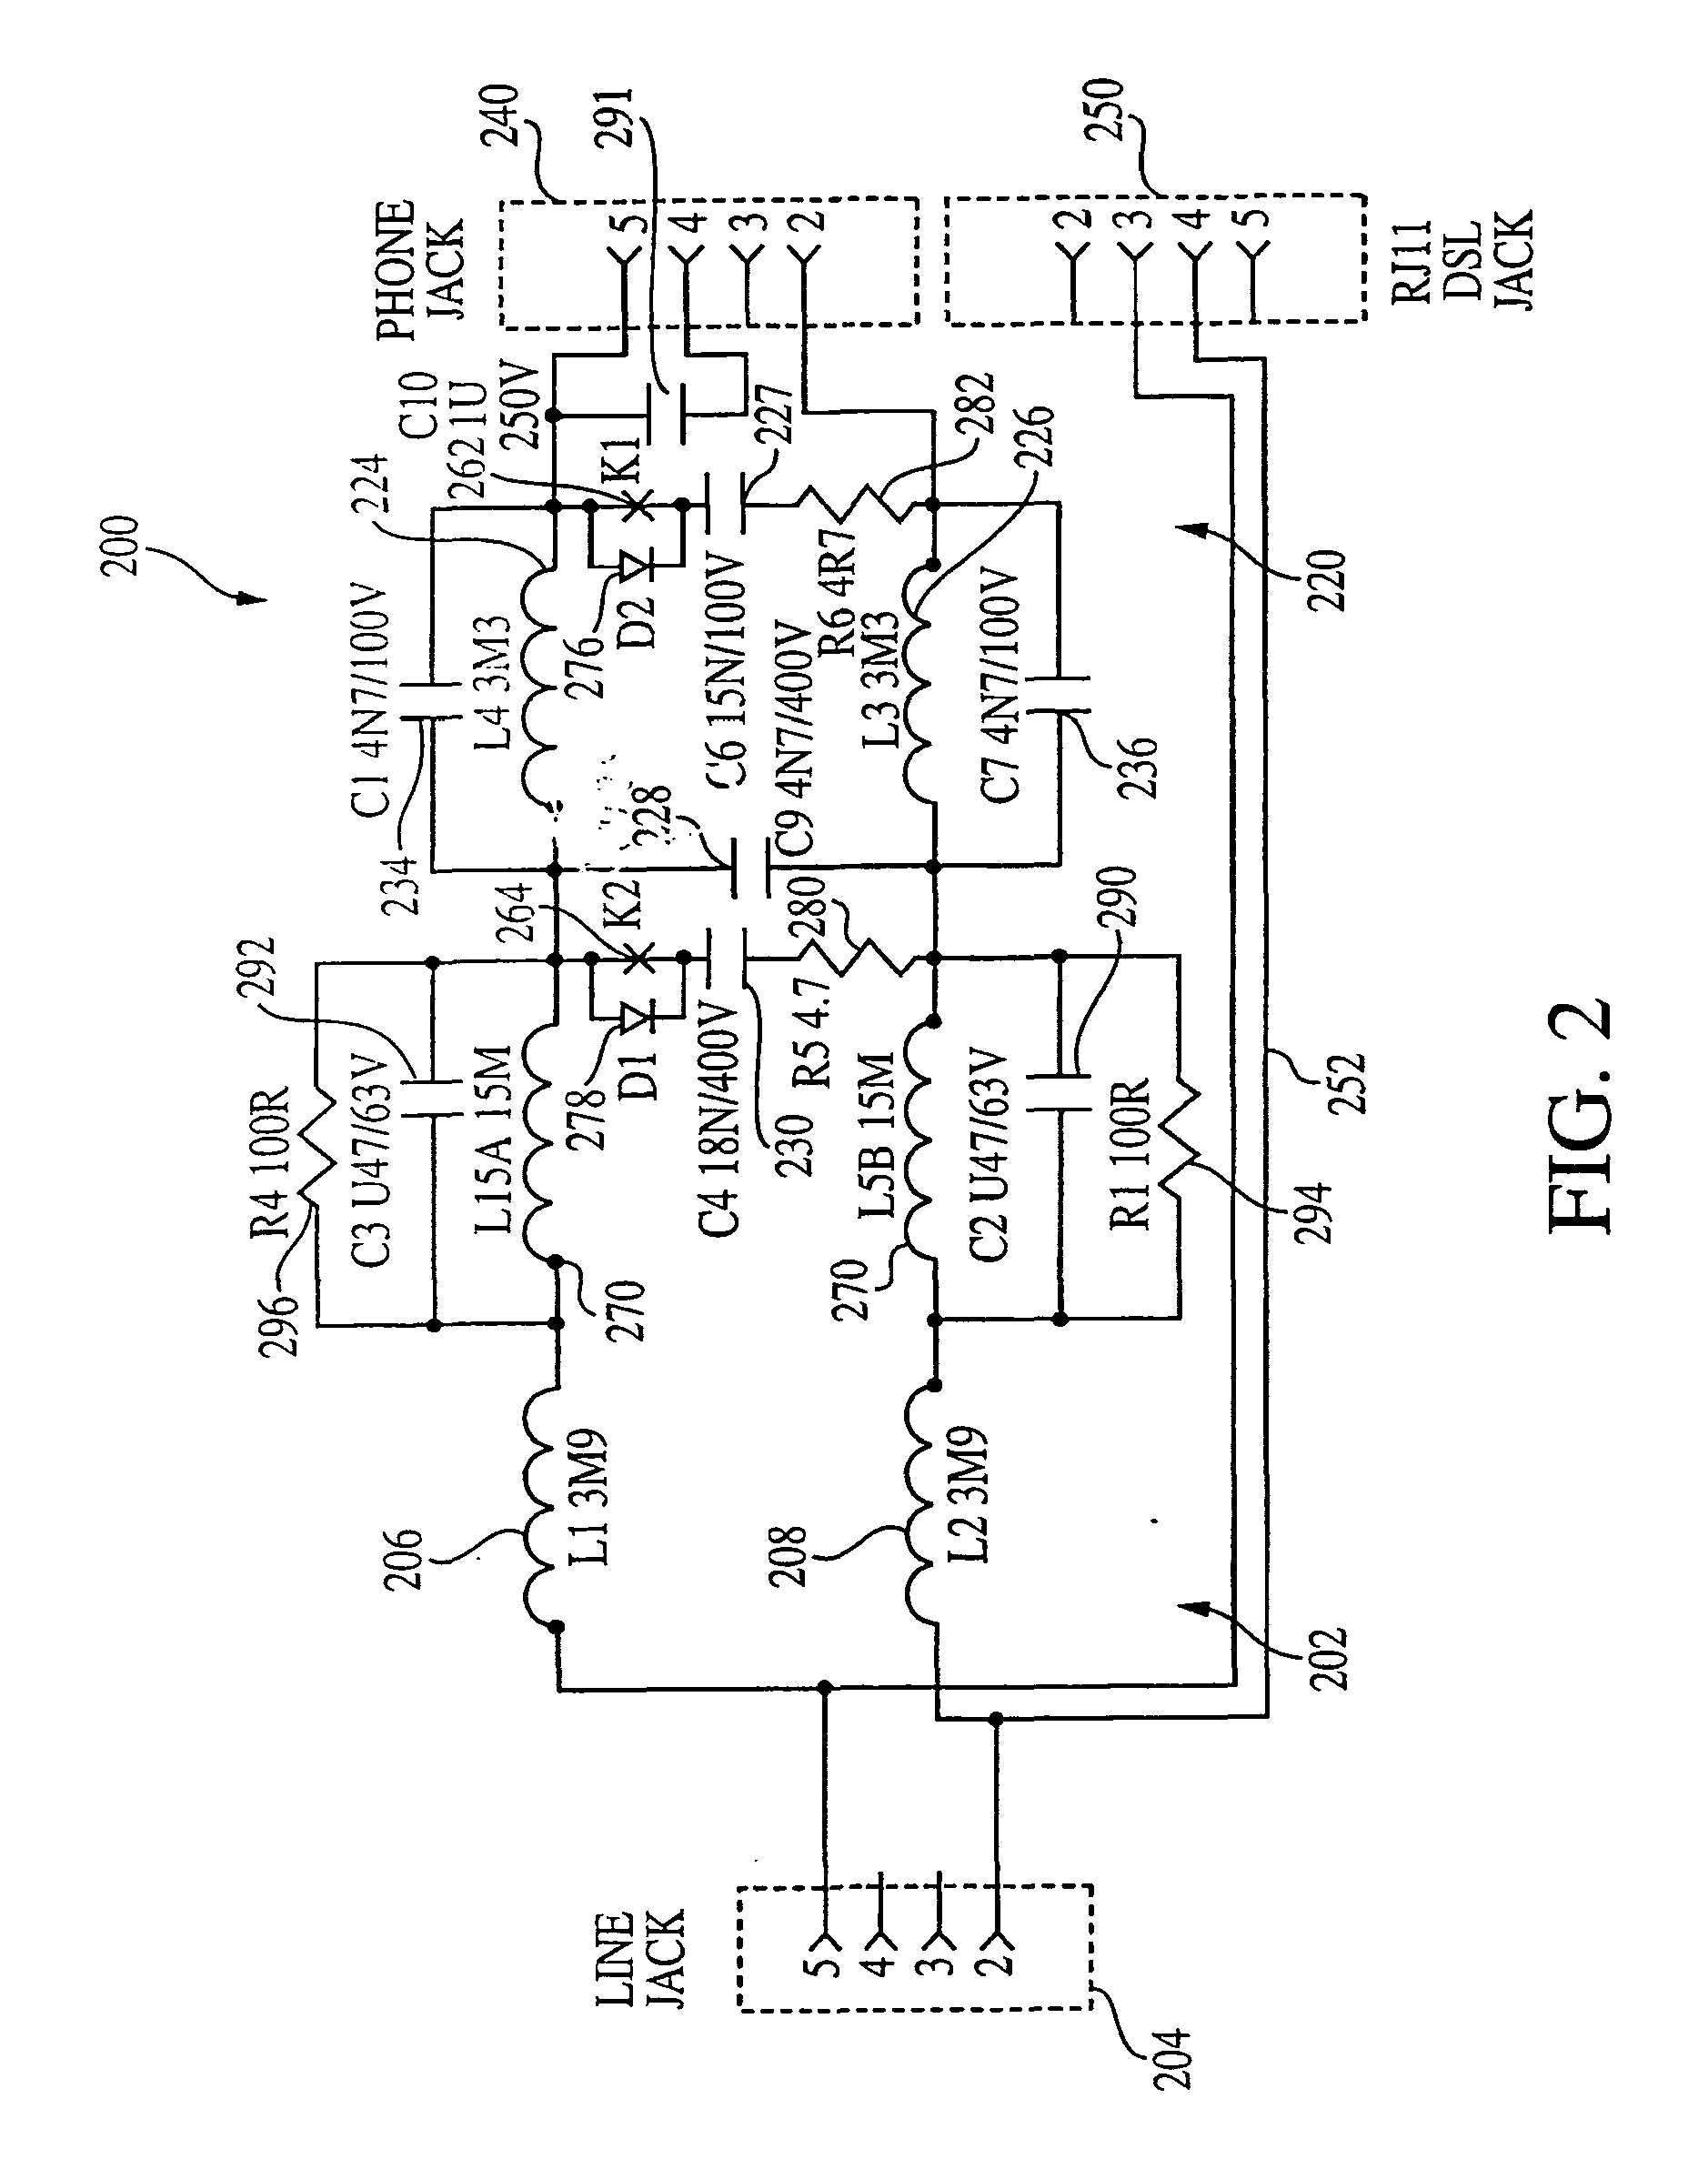 Network Interface Device Wiring Diagram For on